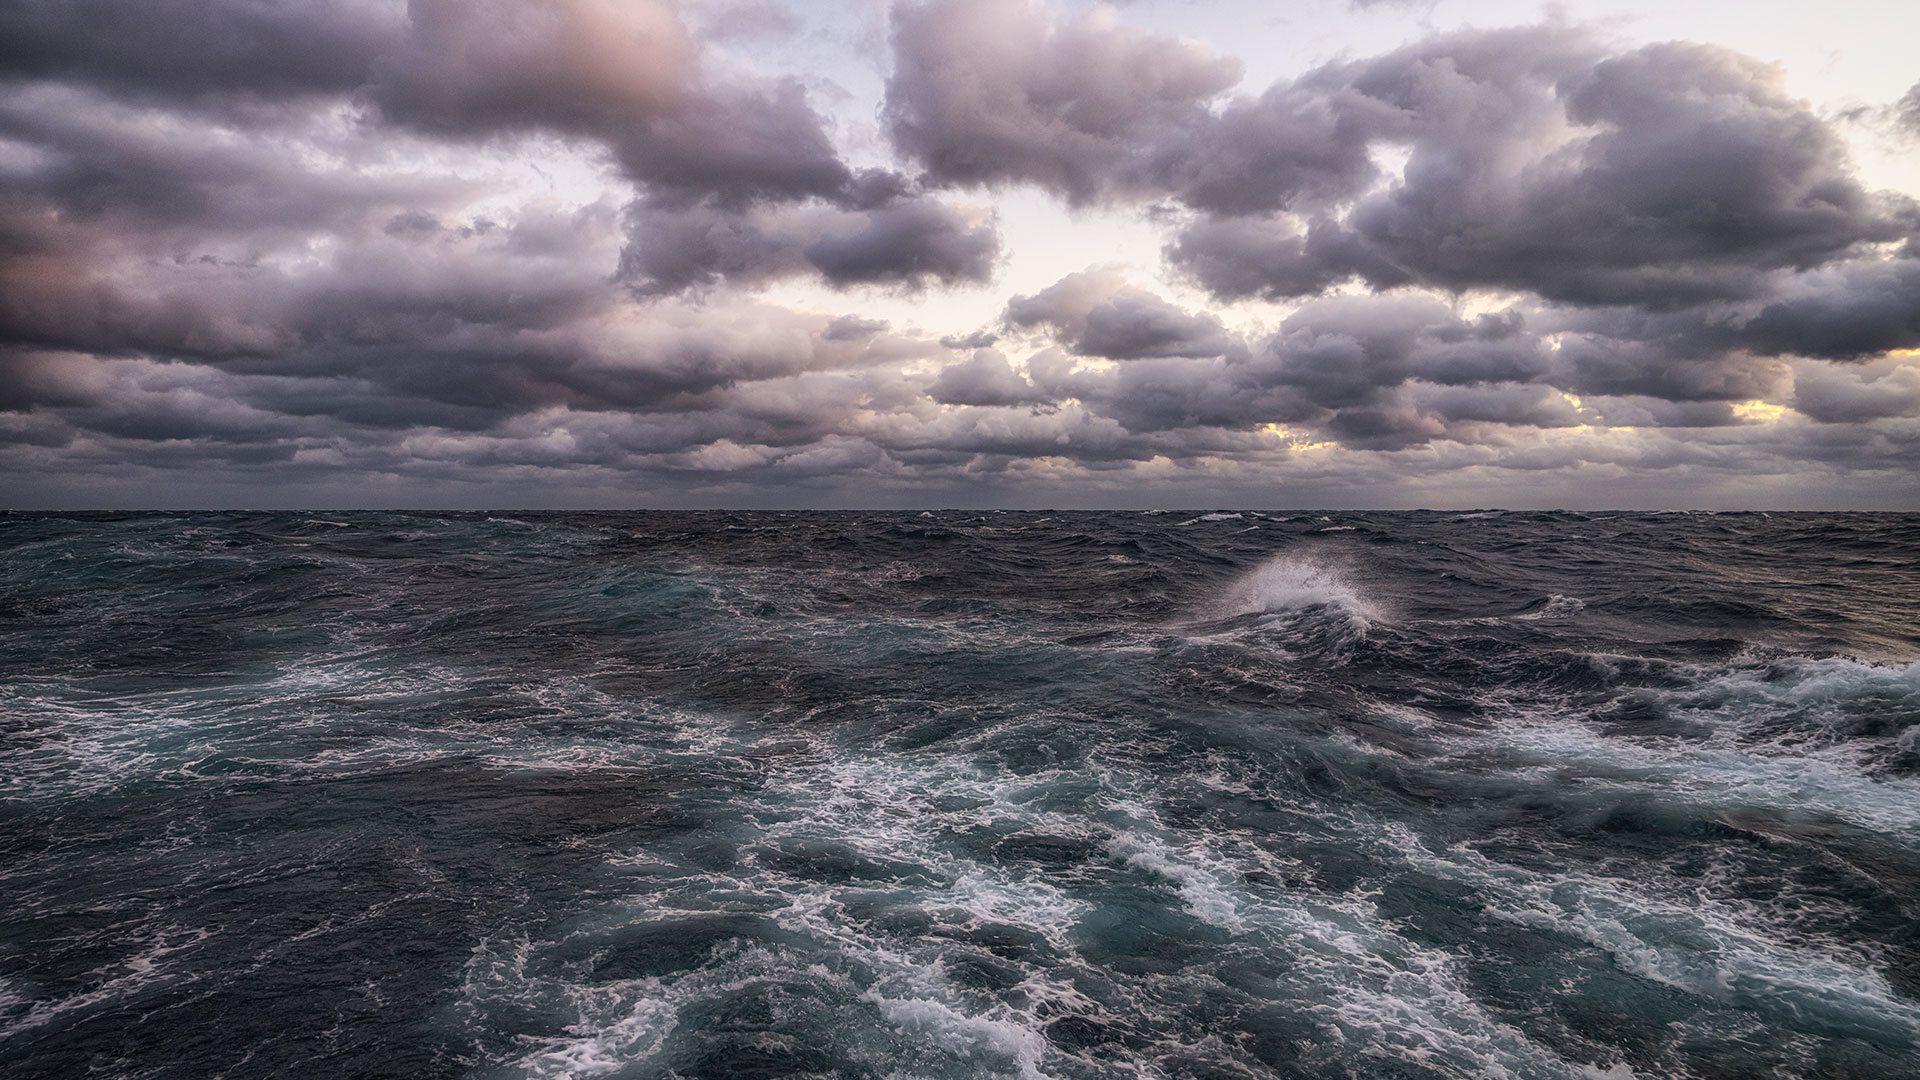 Multimedia: Virtual Meeting Backgrounds: NOAA Office of Ocean Exploration and Research